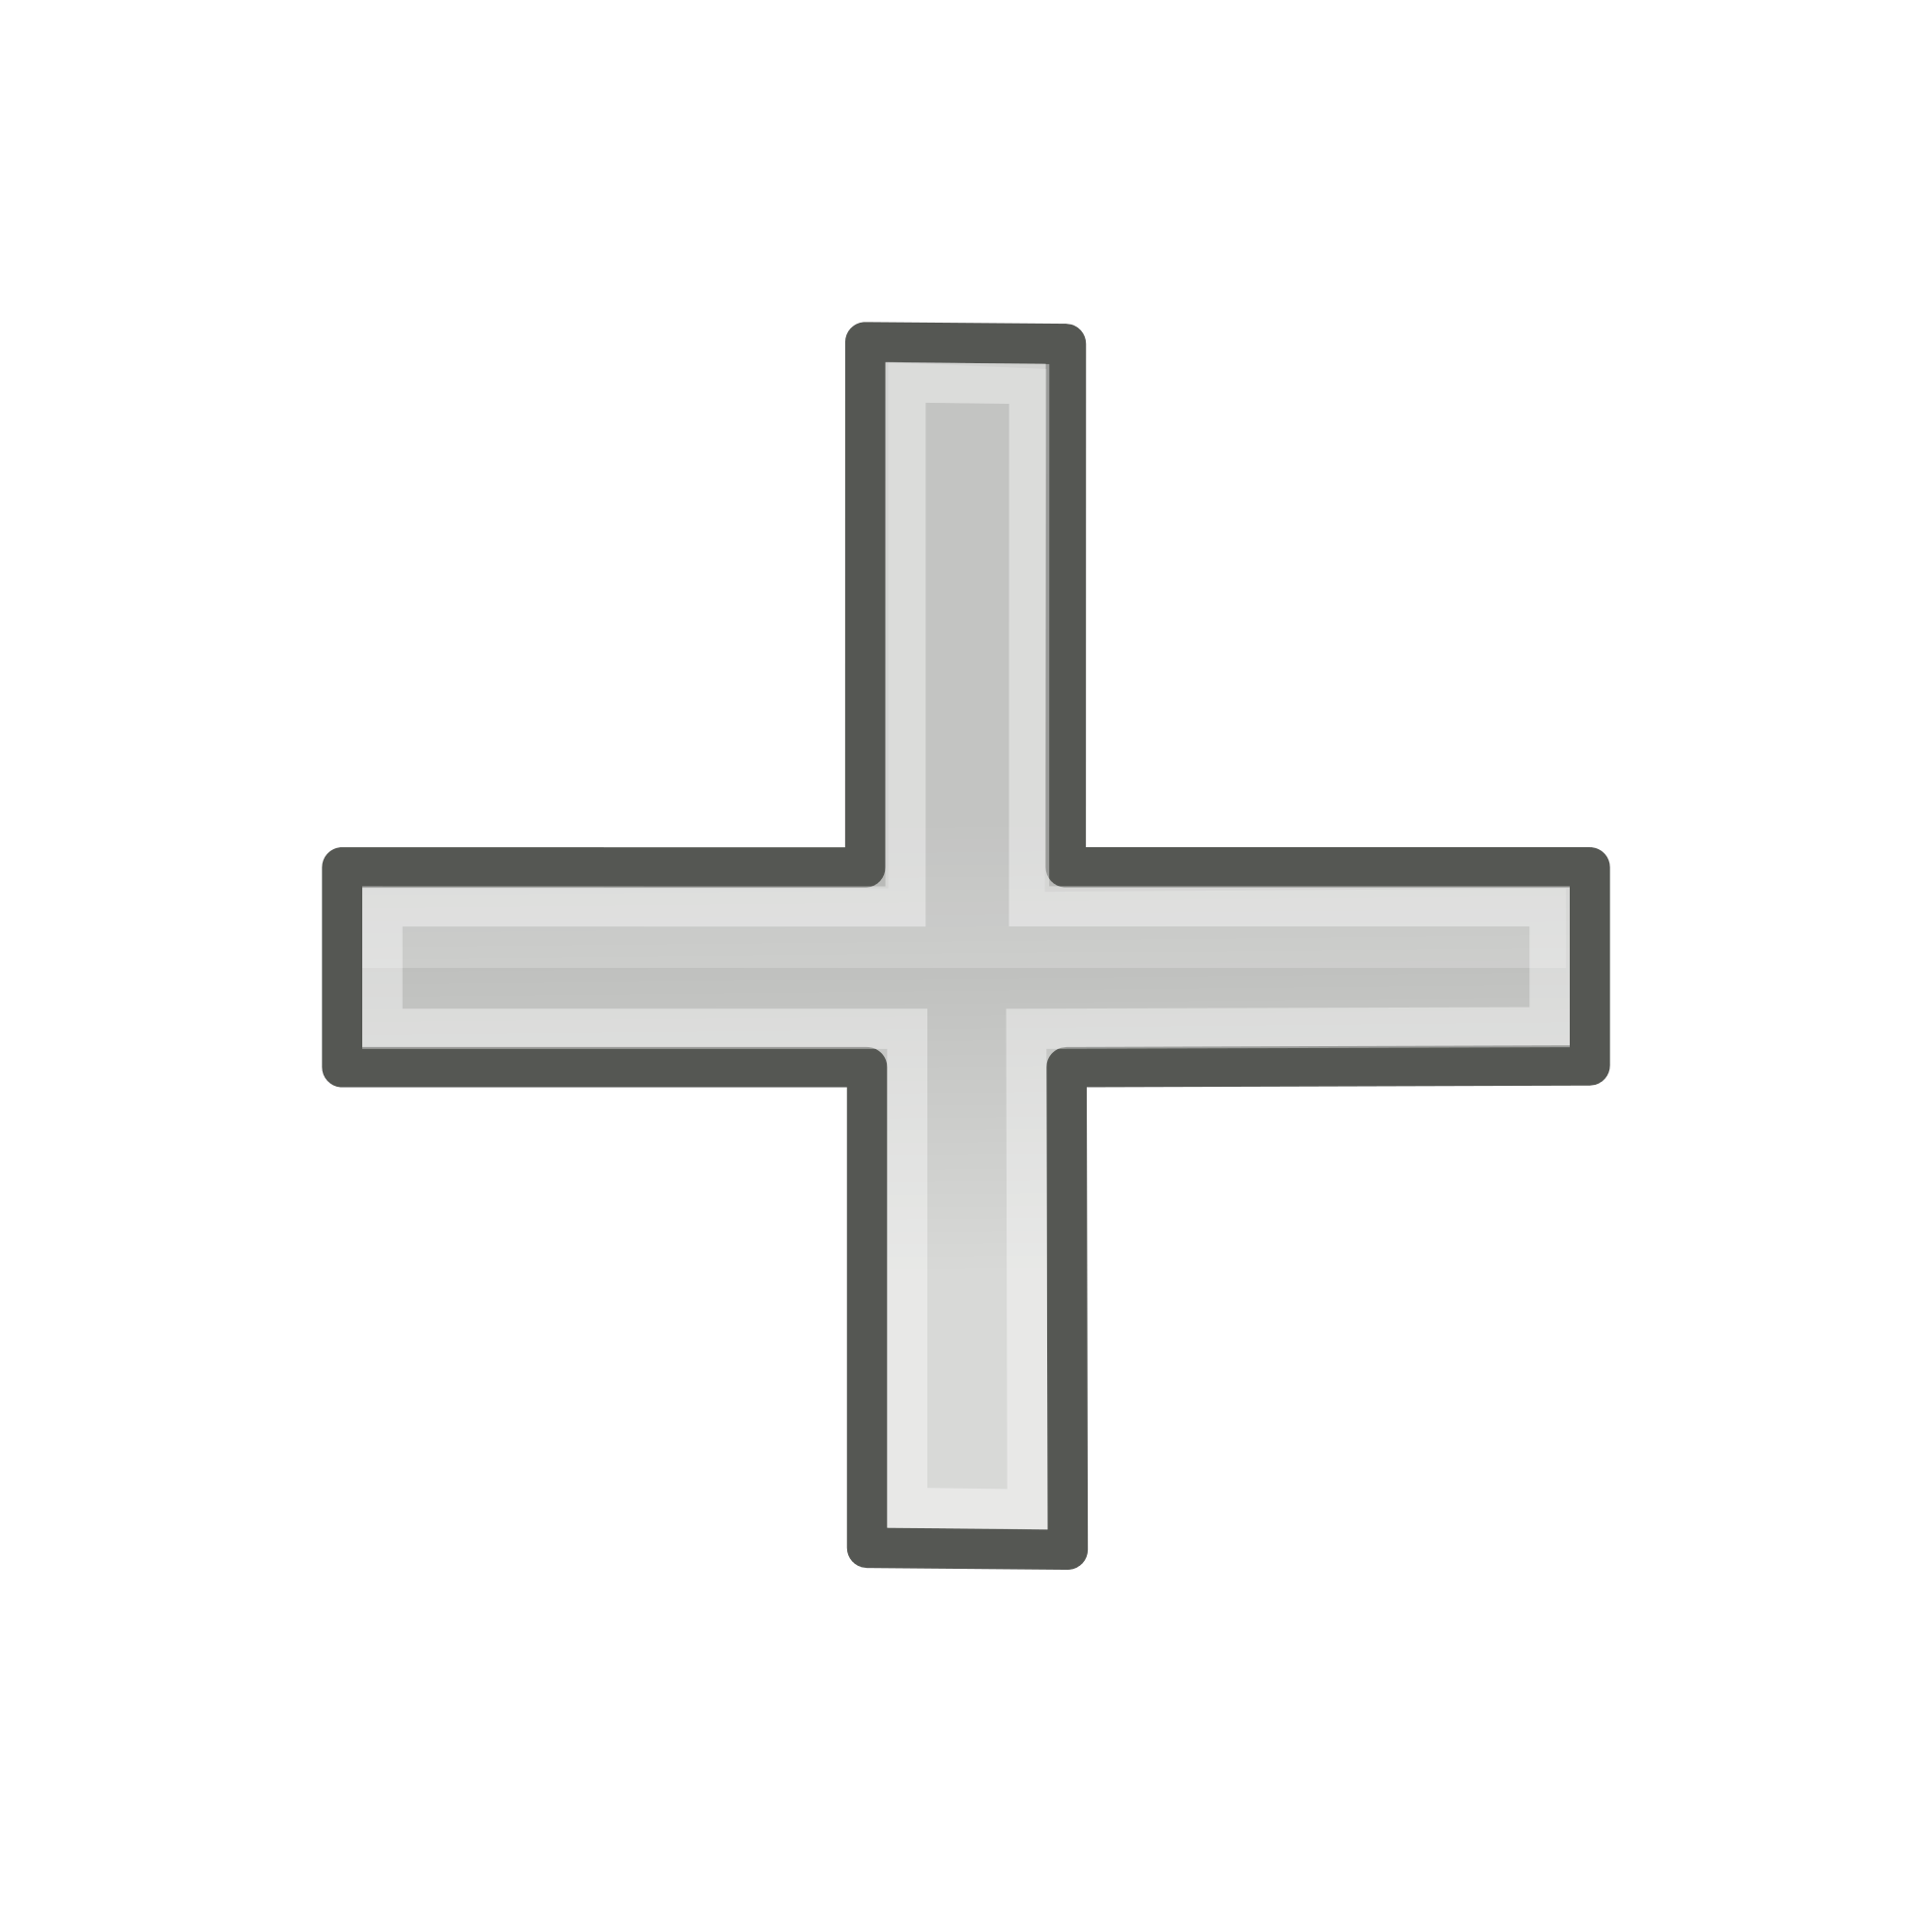 White cross clipart gif image free stock File:Gnome-list-add.svg - Wikimedia Commons image free stock